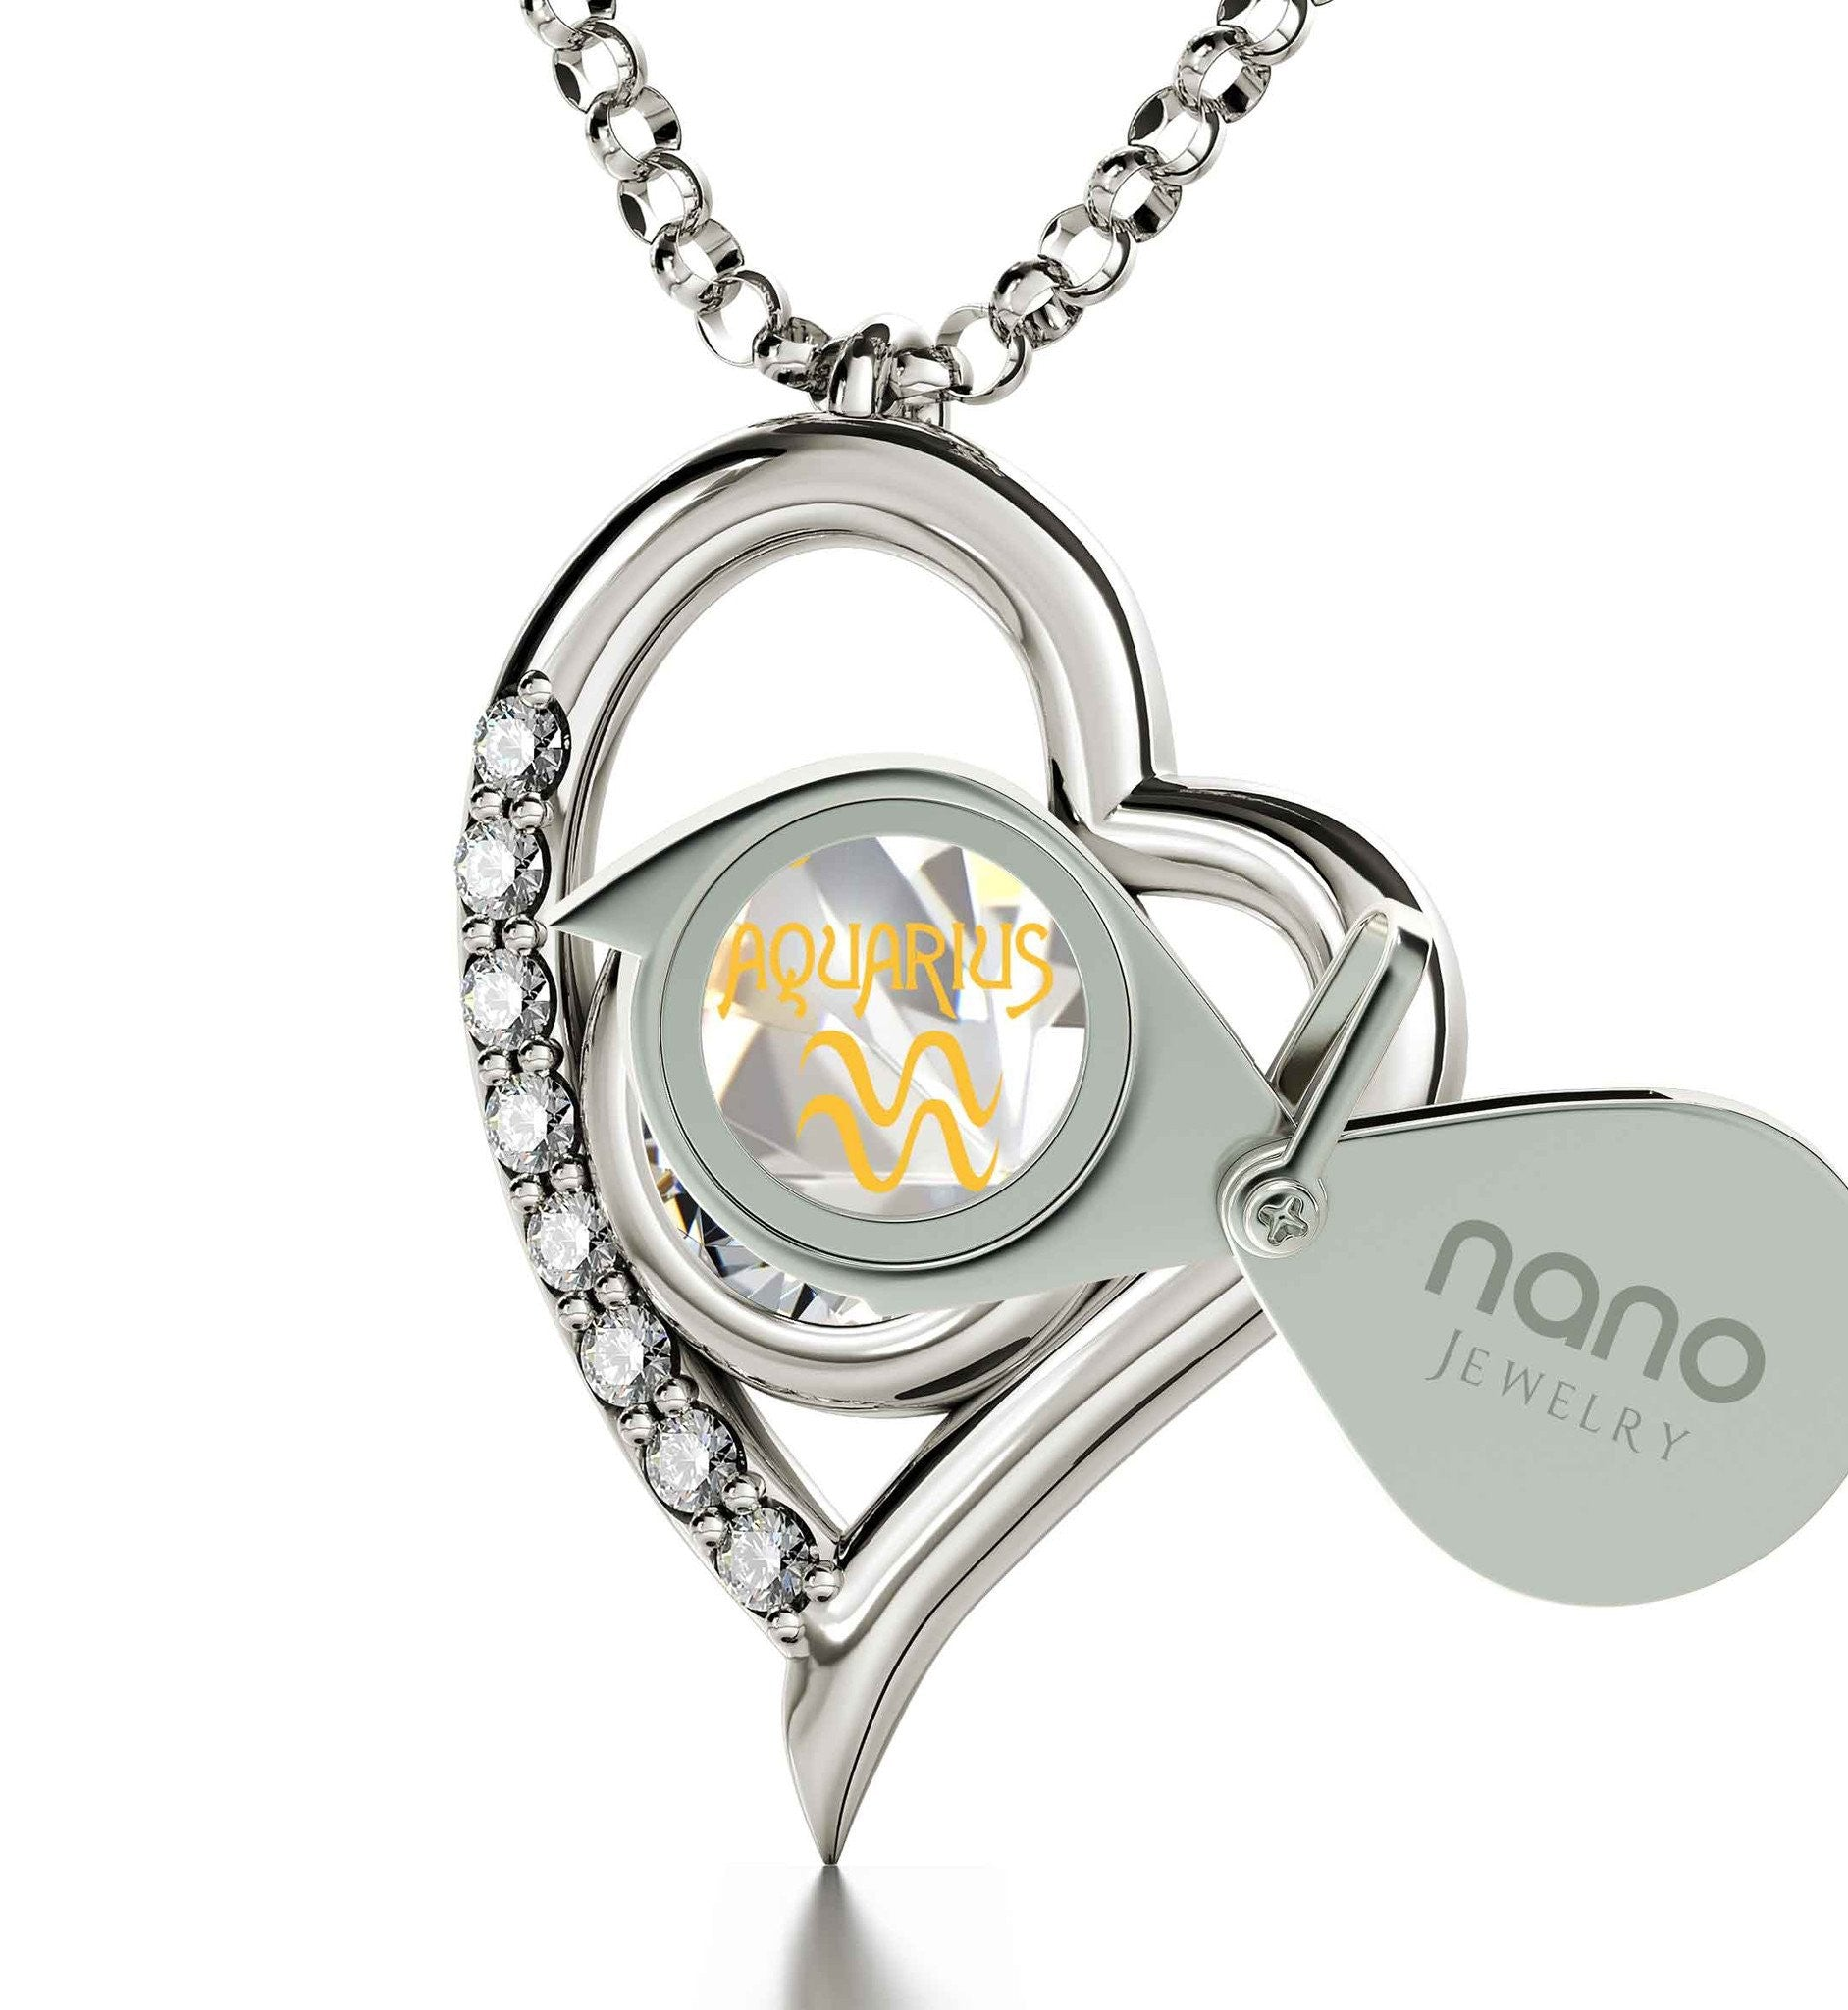 """Aquarius Jewelry With 24k Zodiac Imprint, Engraved Necklaces for Her, Christmas Gifts for Sister, by Nano """